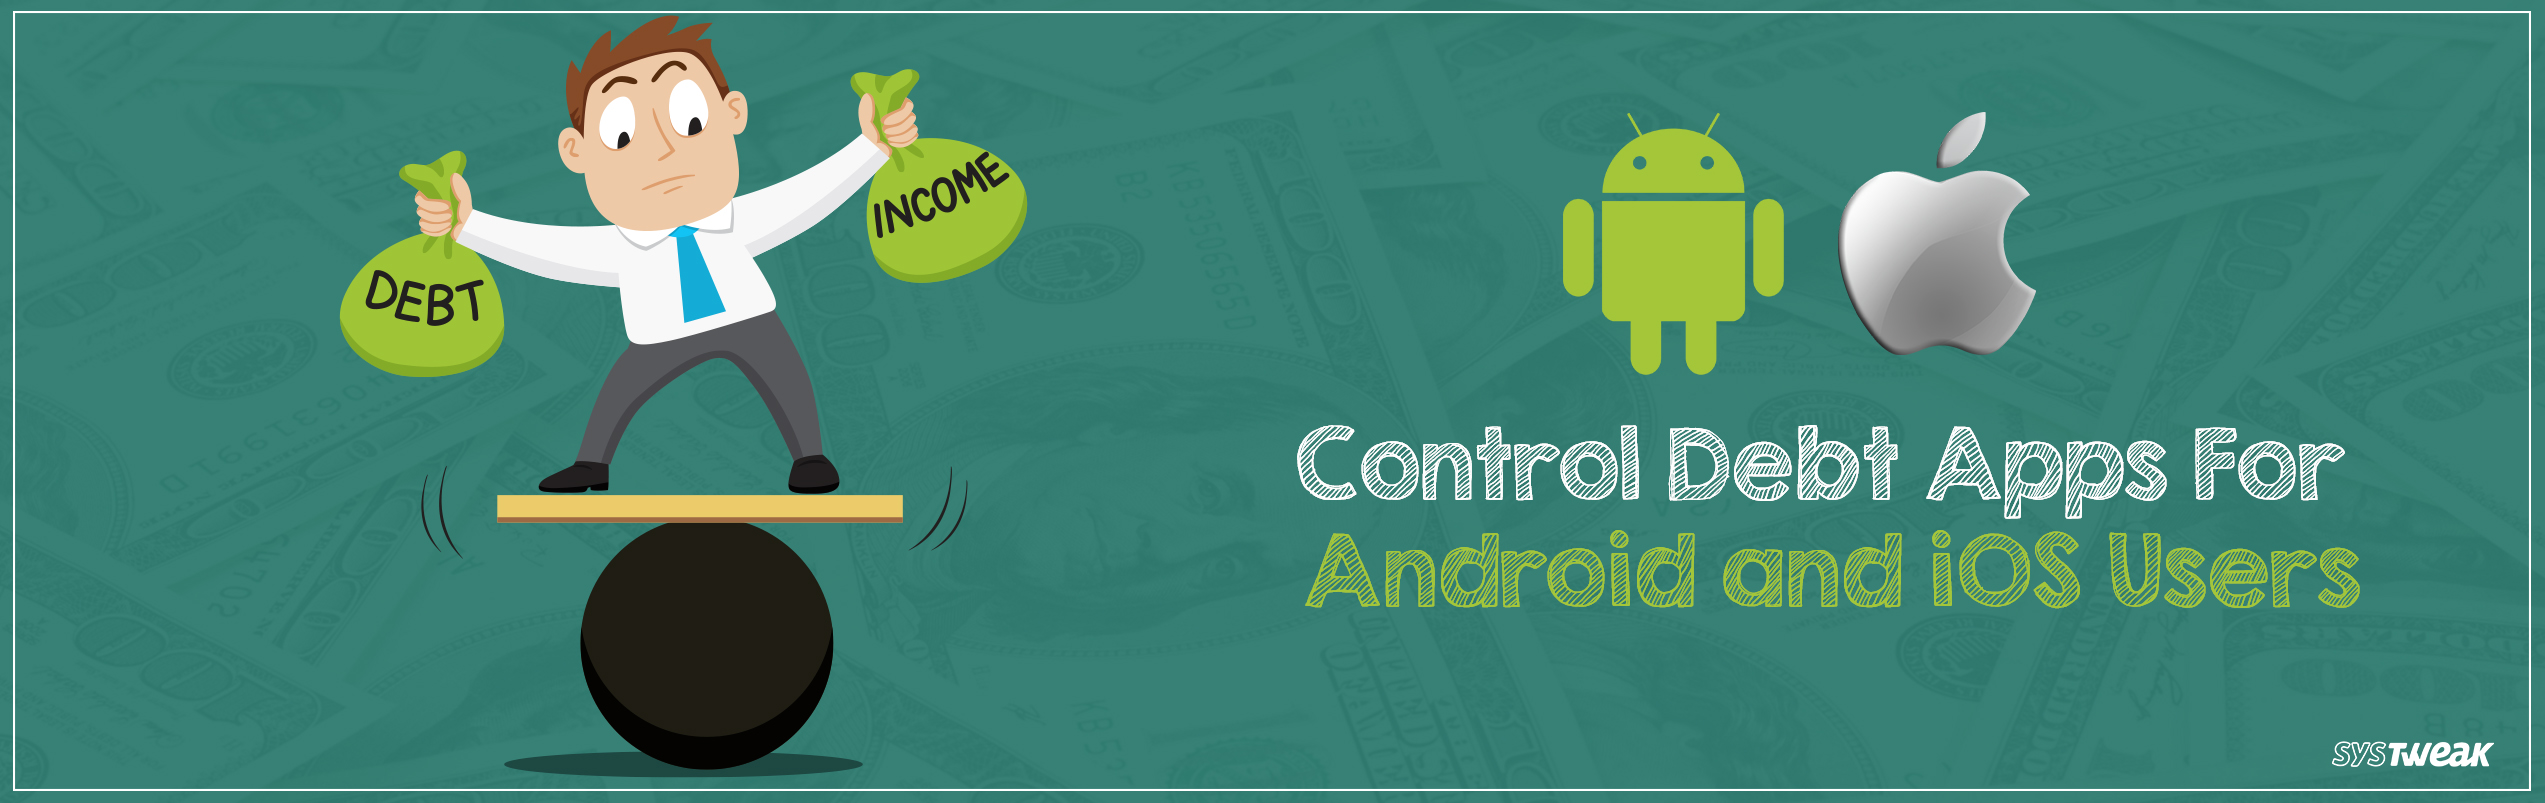 Control Debt With These Android and iOS Apps